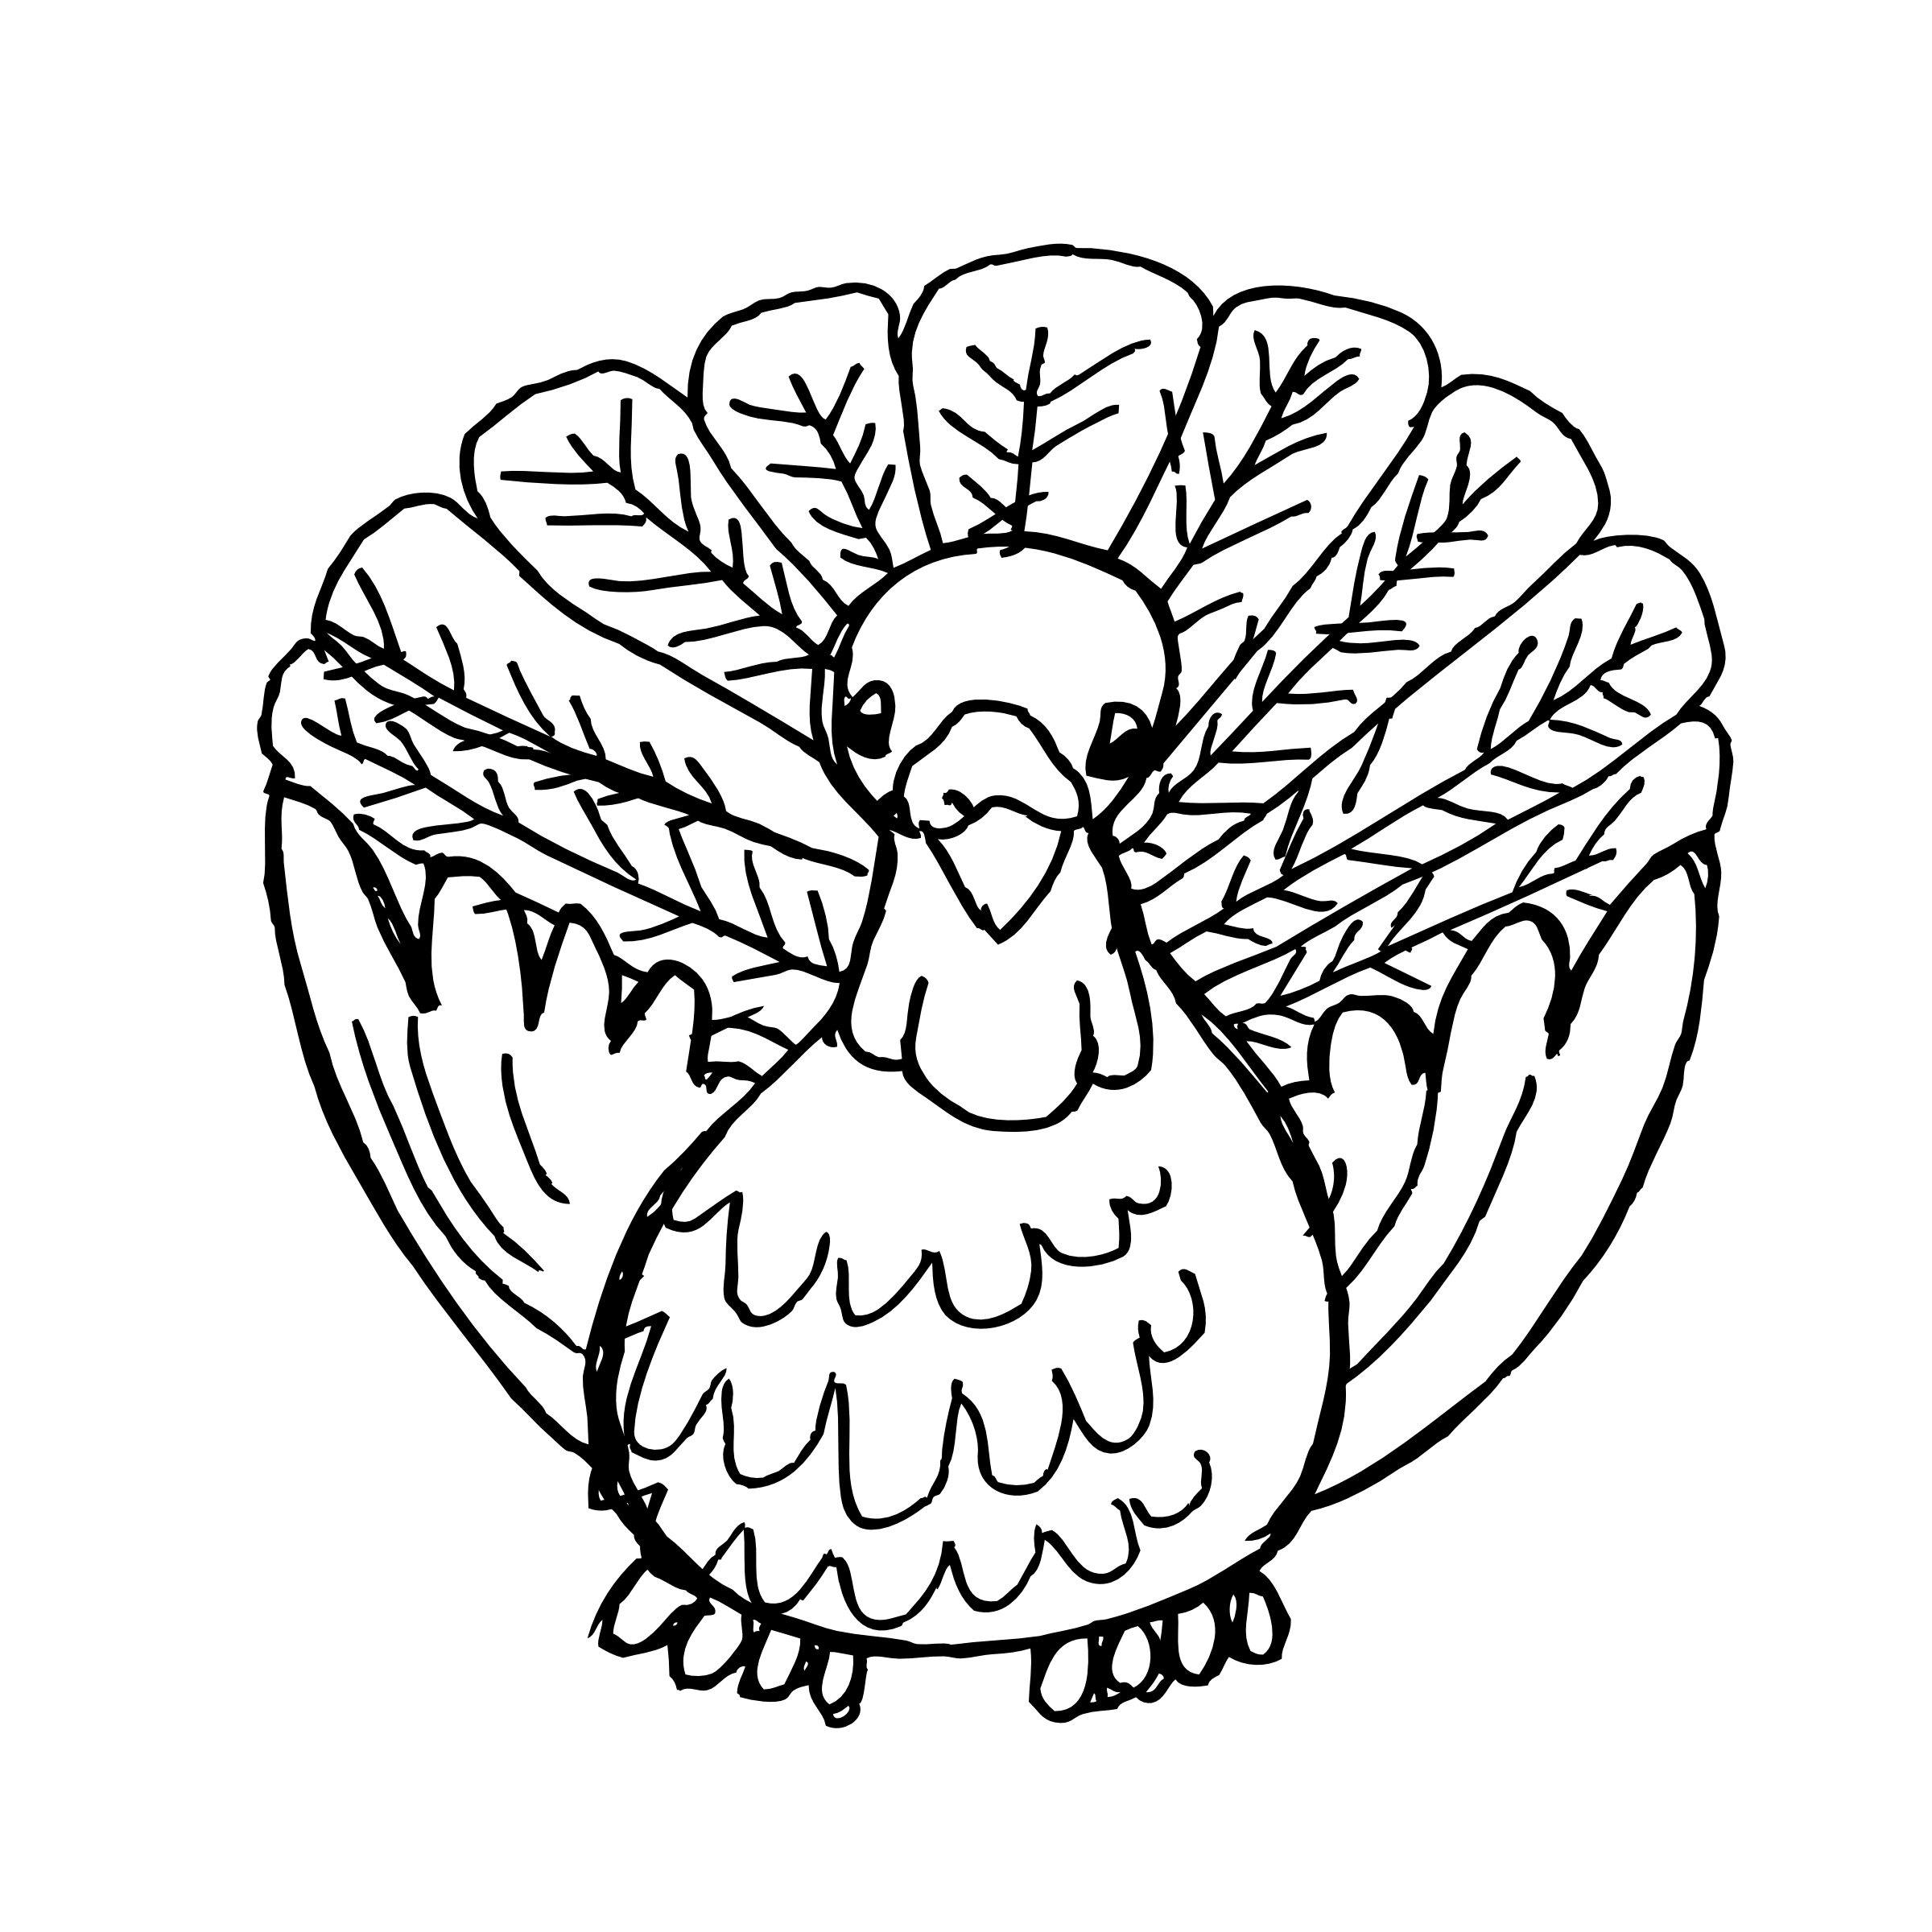 Turkey feathers clipart black & white png transparent library Turkey Feather Clipart Black And White | Clipart Panda - Free ... png transparent library